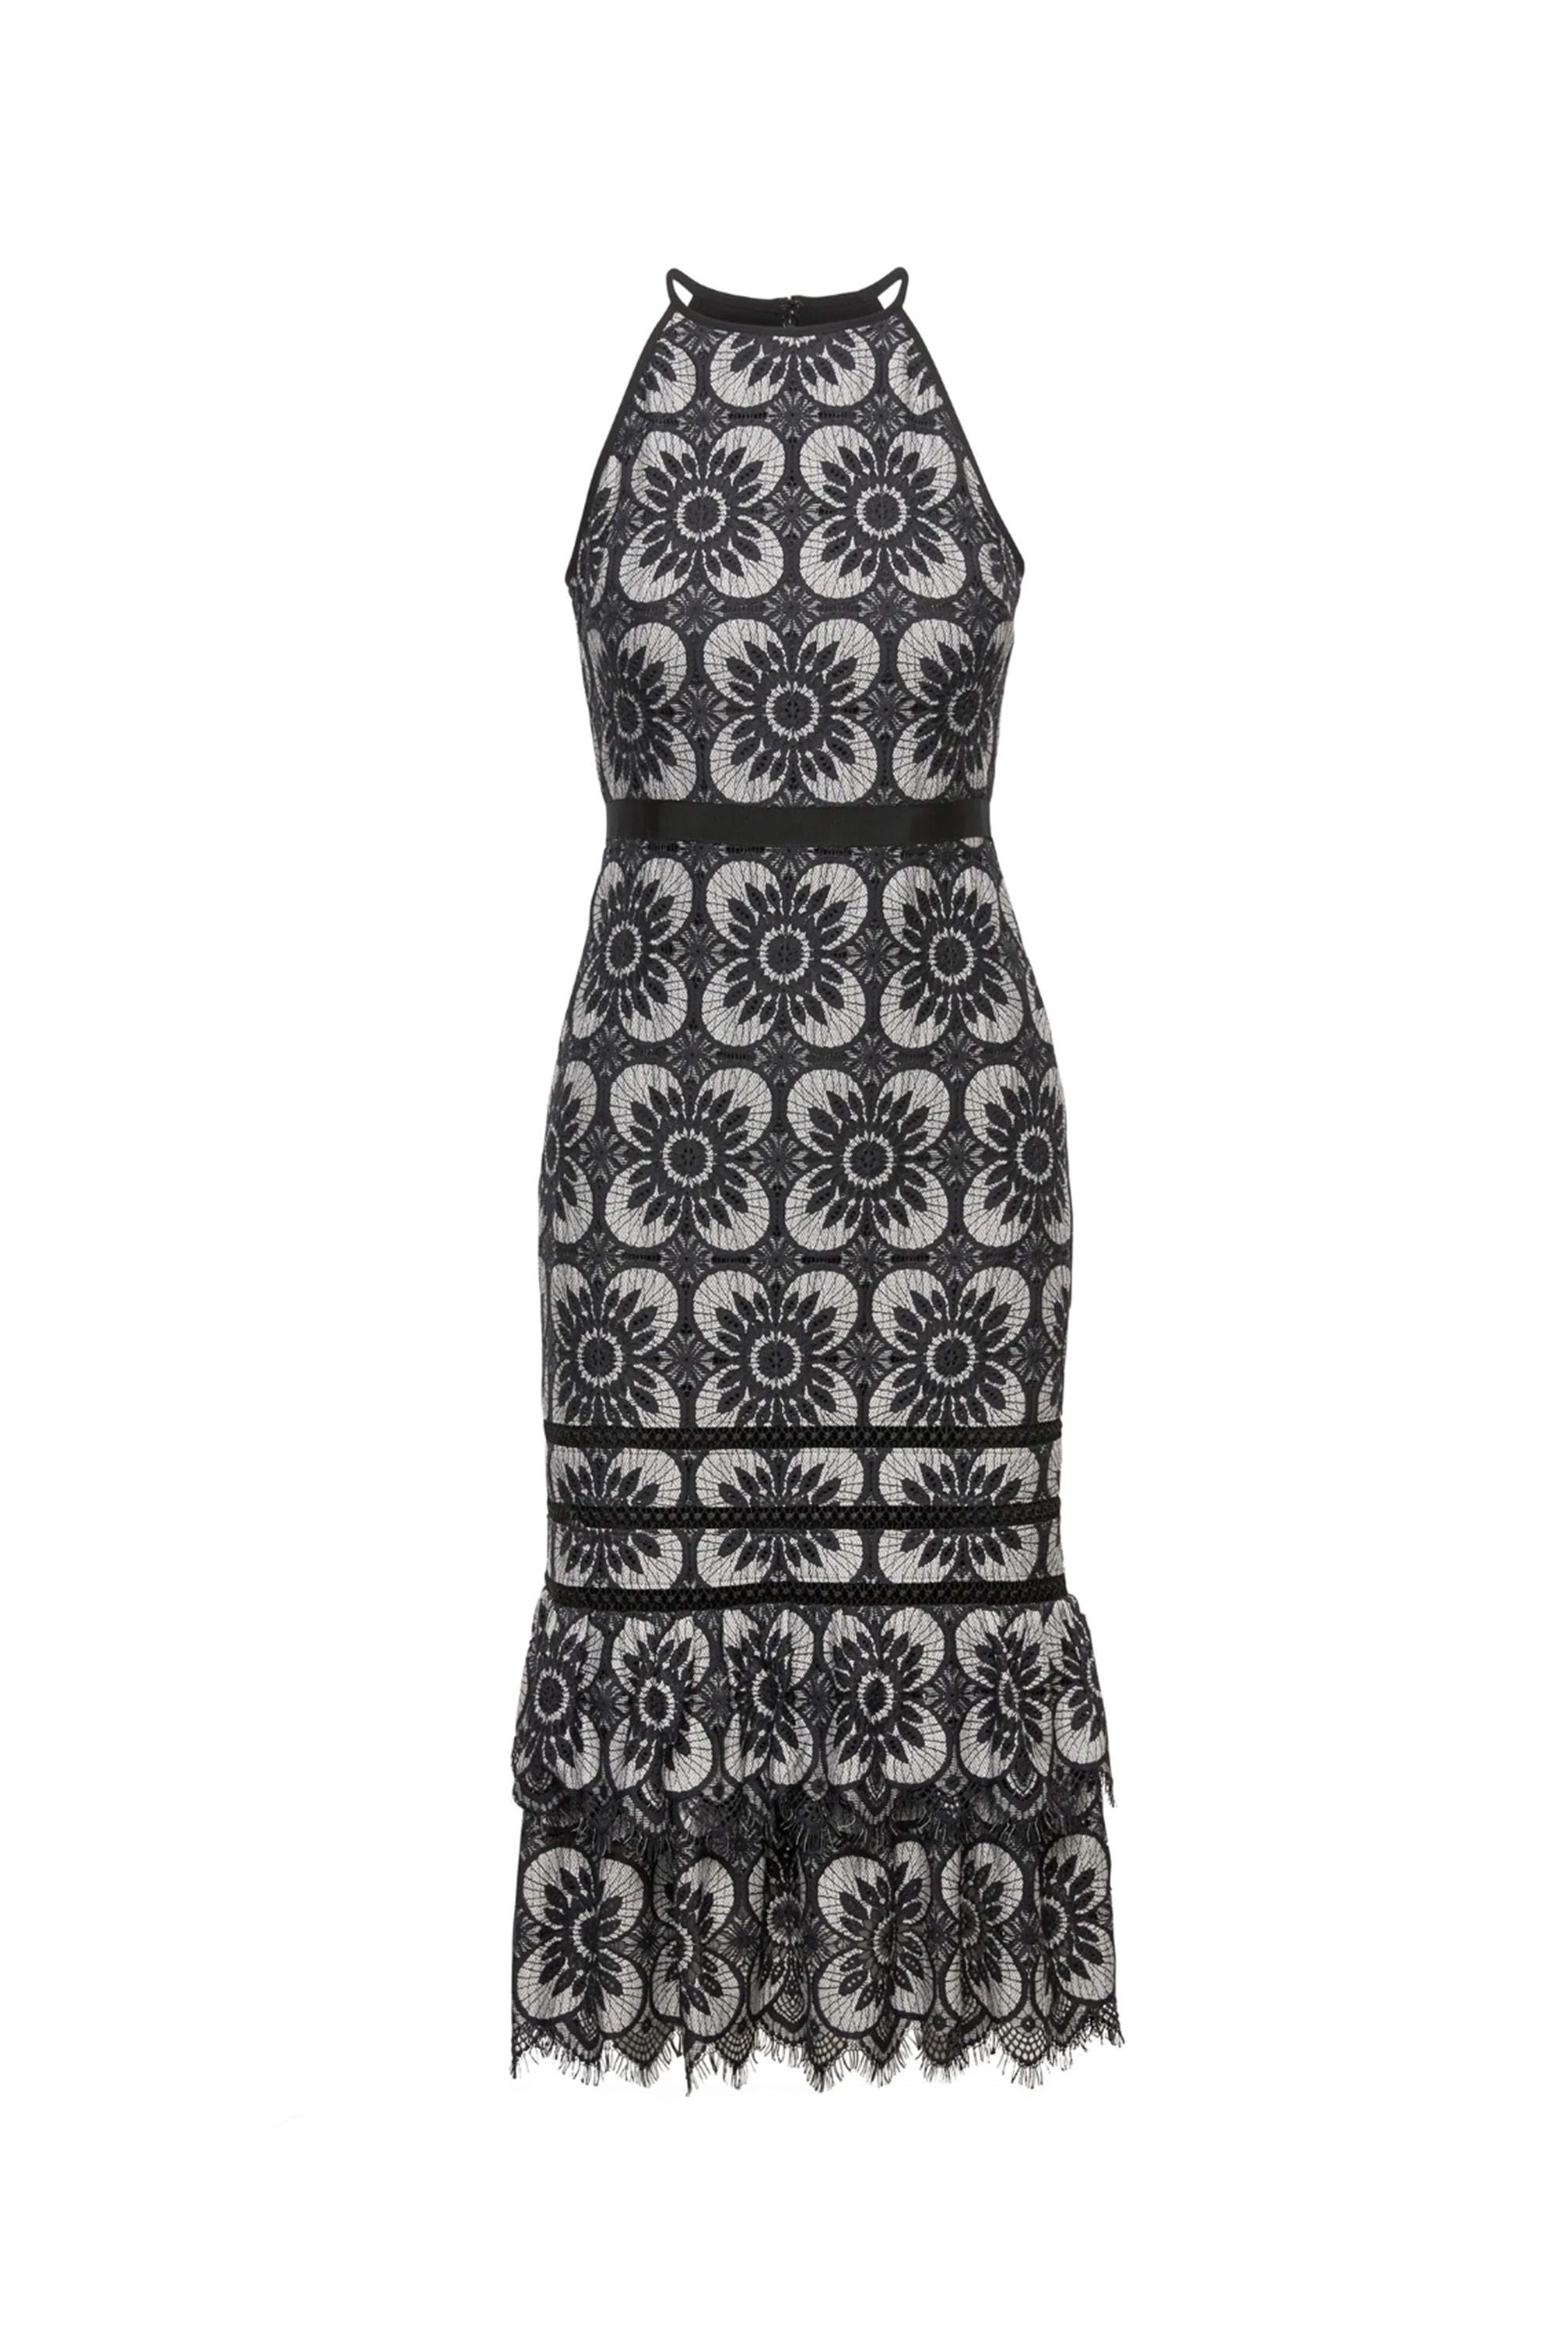 Lace Midi Dress Banana Republic bananarepublic.gap.com $80.99 SHOP NOW A form-flattering silhouette will look amazing on the dance floor.